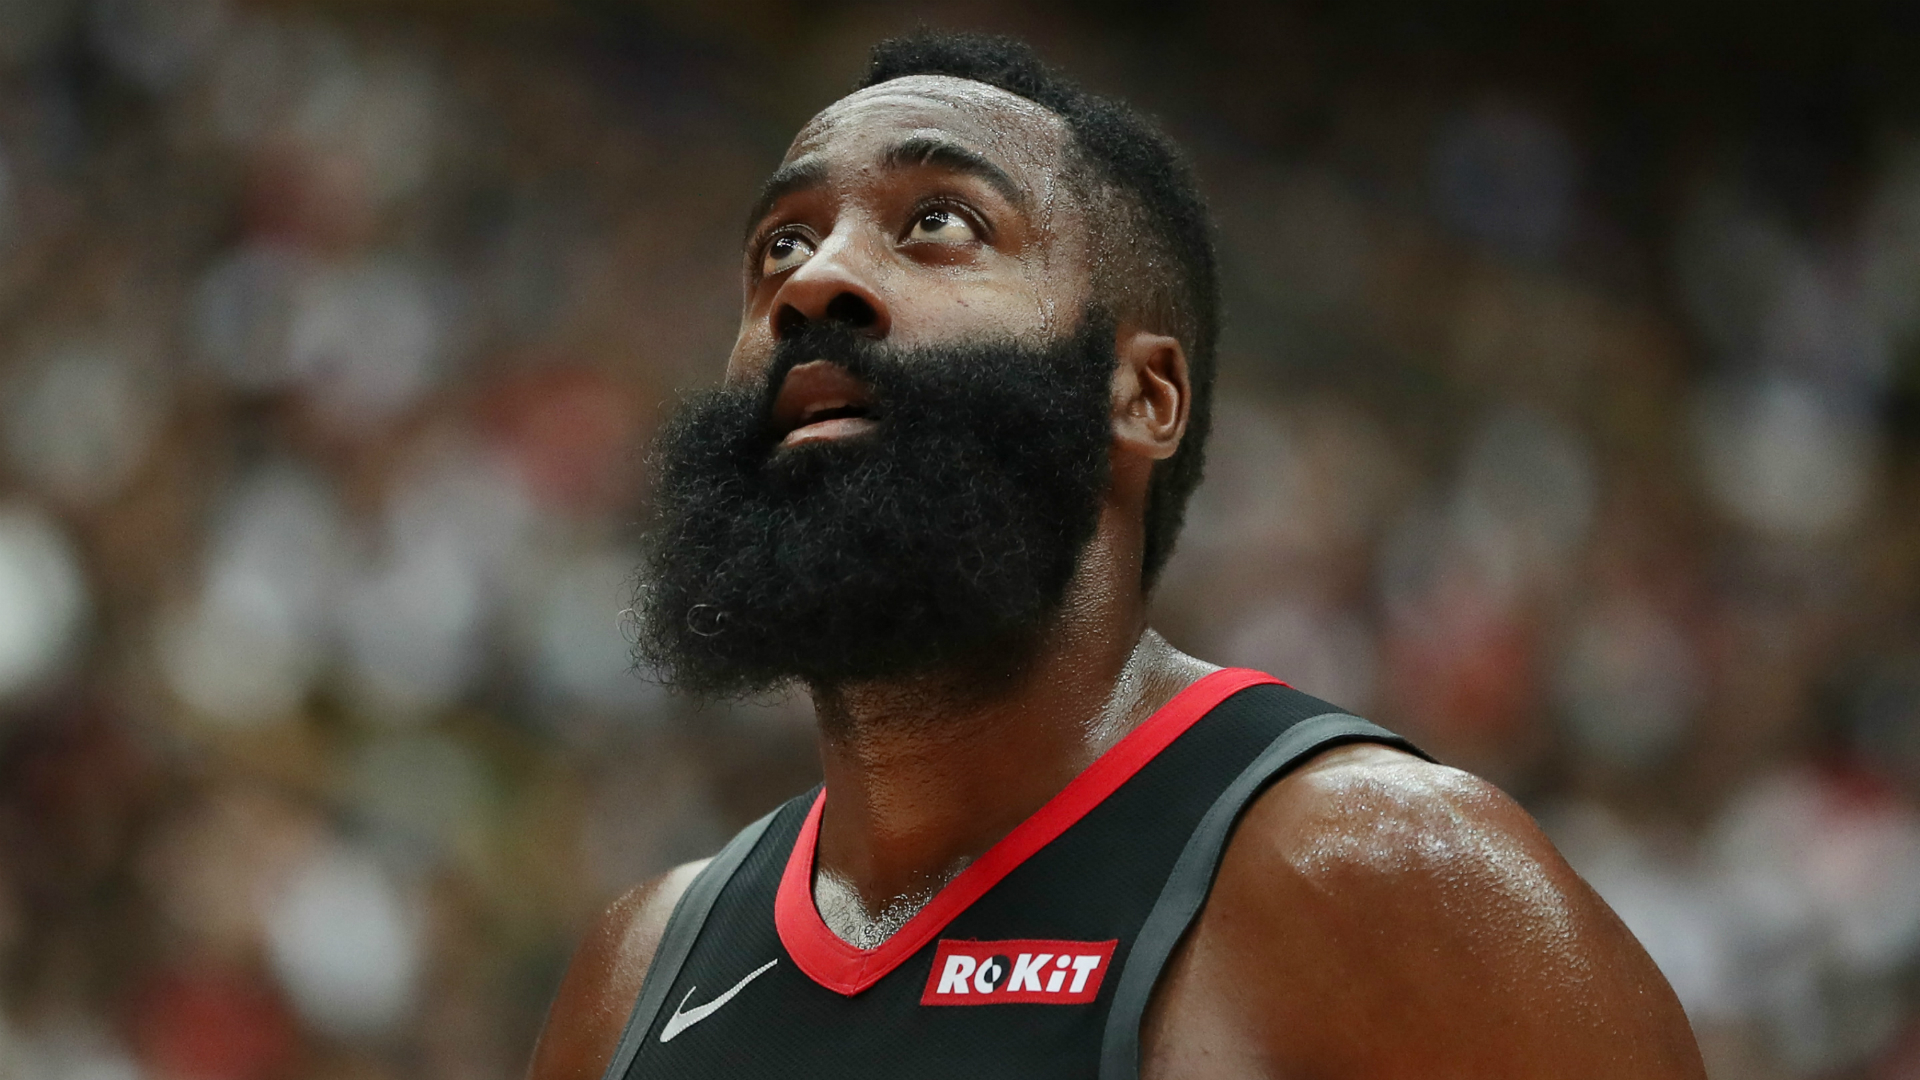 Rockets could have chalked it up – James Harden impressed by depleted Houston's show of resolve